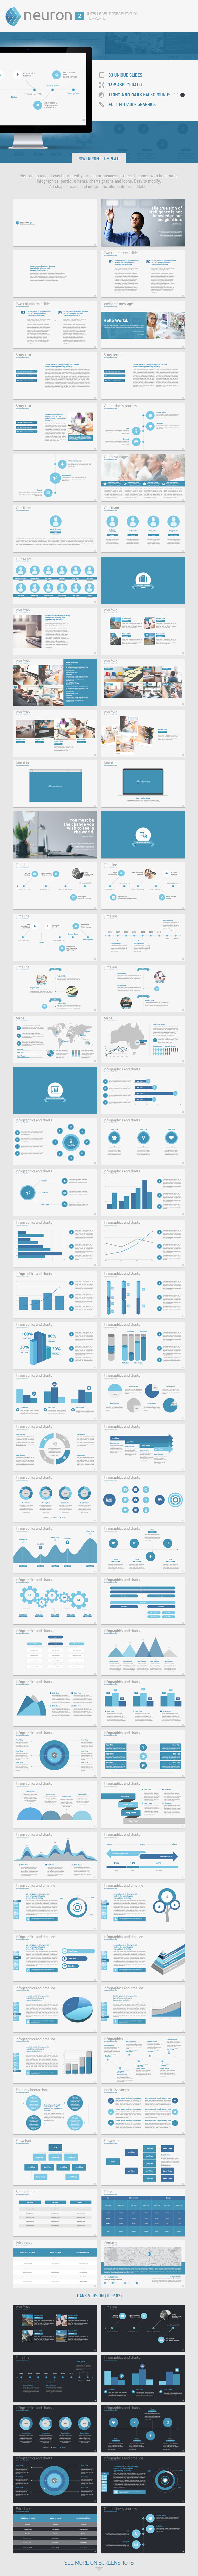 Neuron Two PowerPoint Presentation Template  - Business PowerPoint Templates